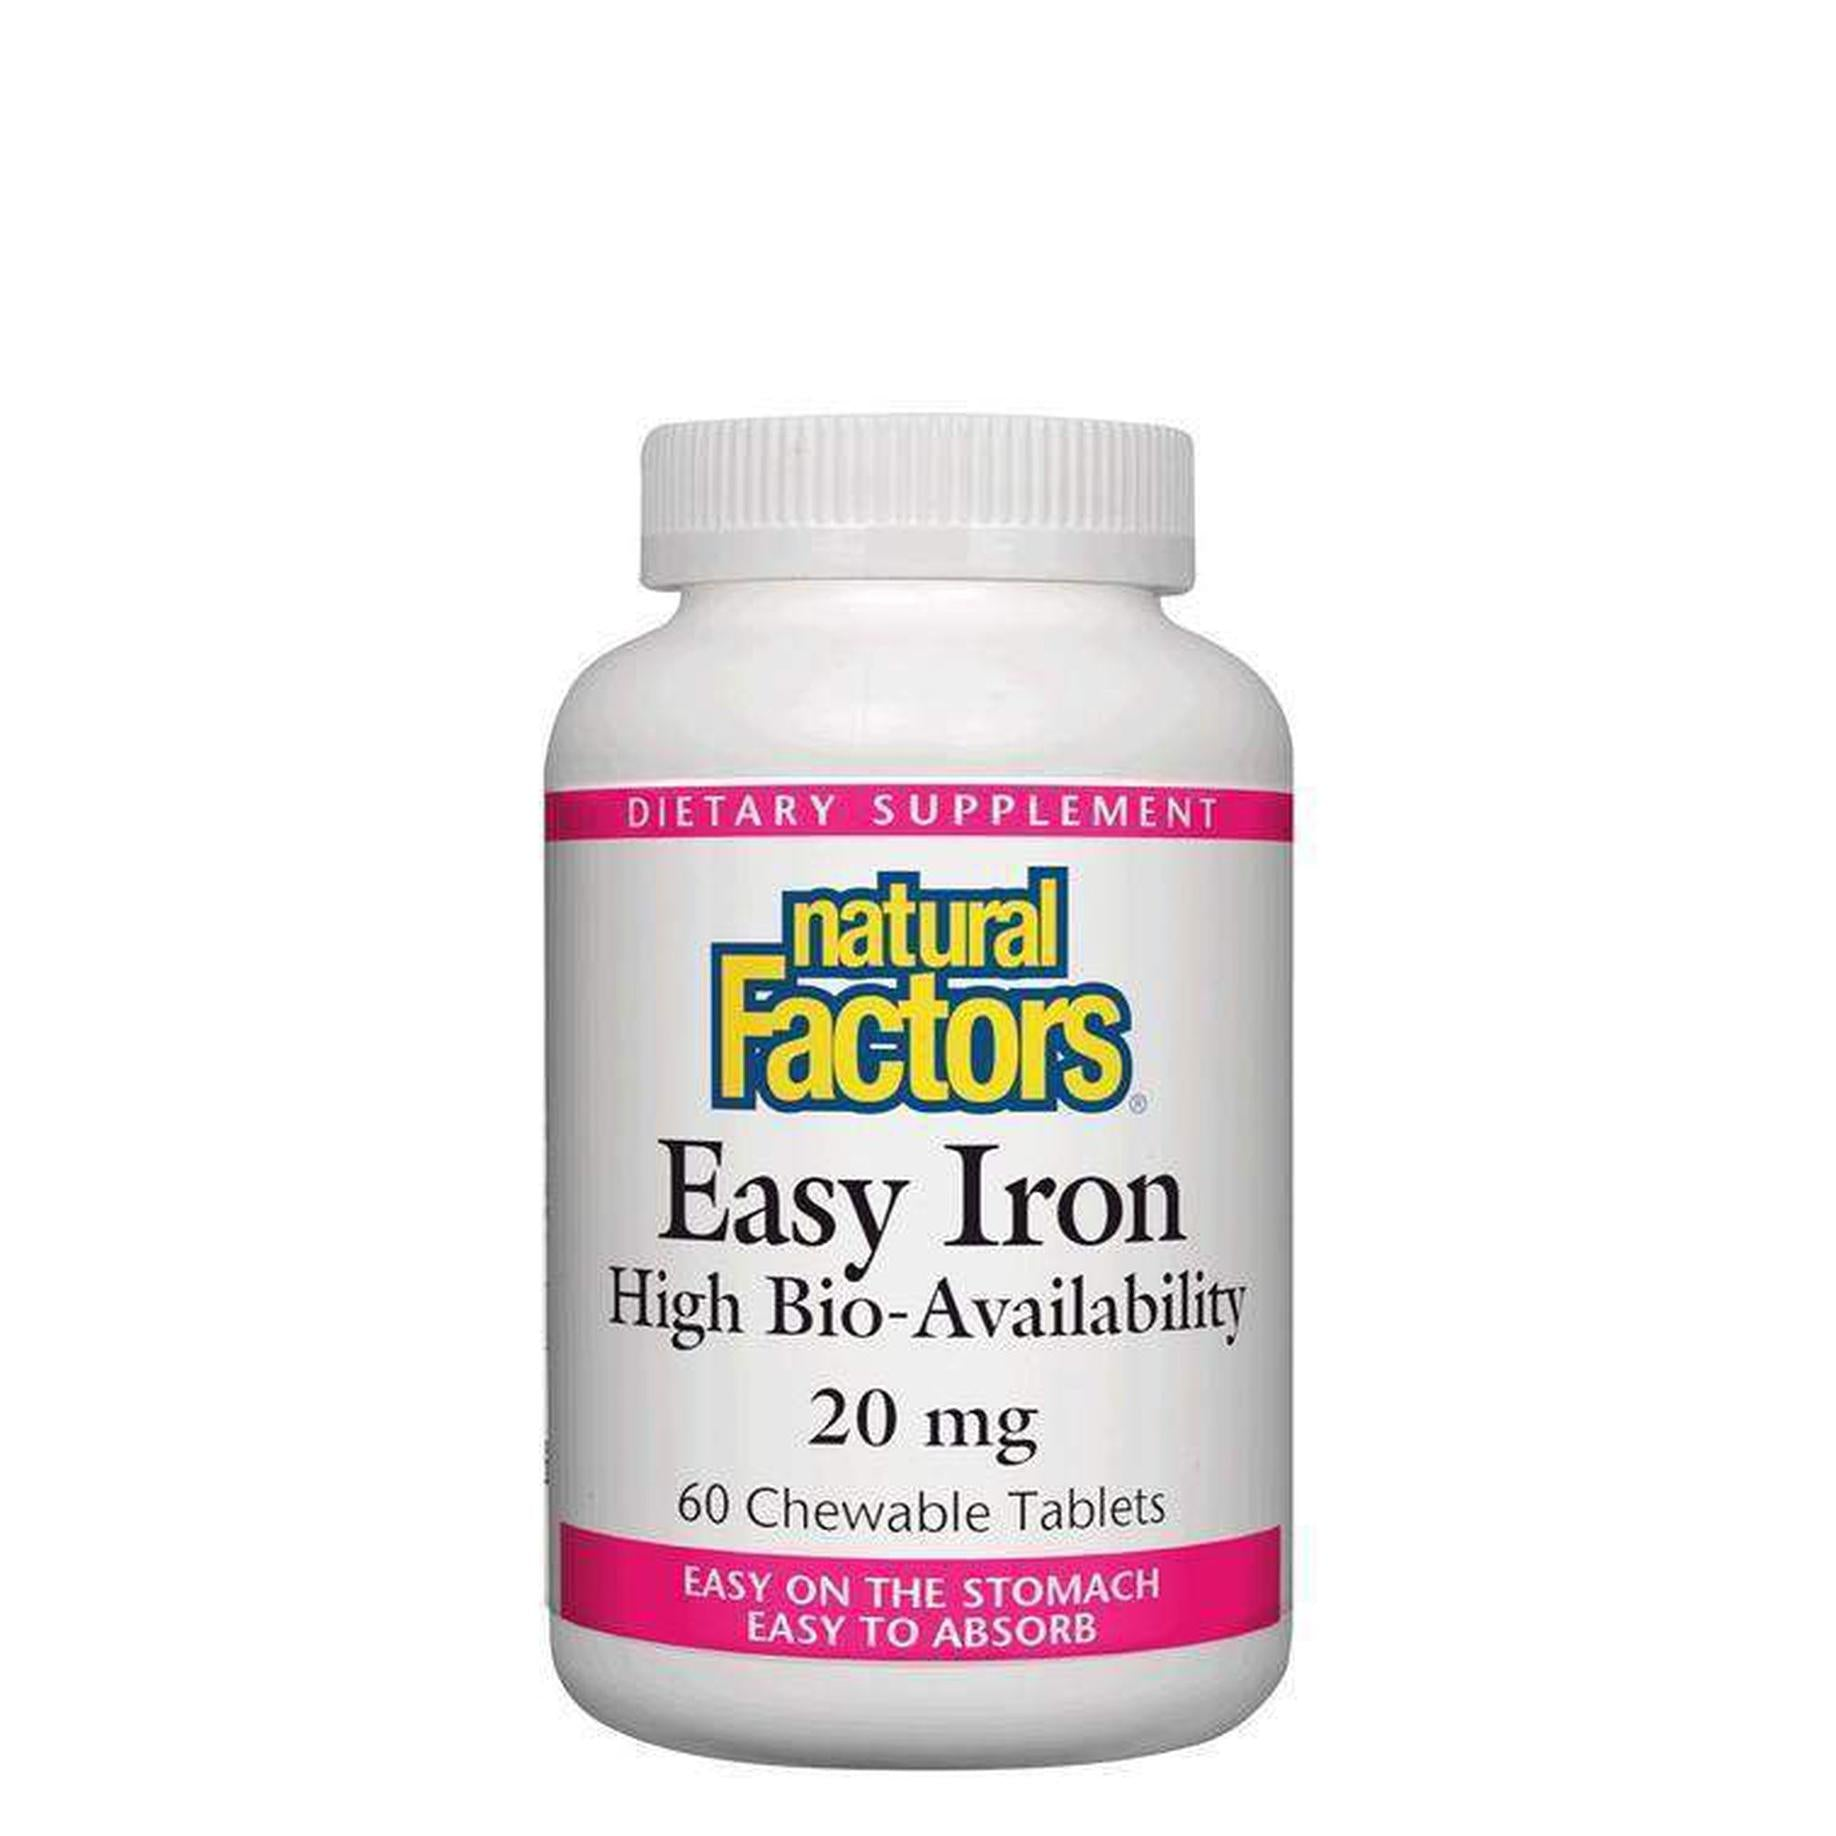 Natural Factors, Easy Iron, High Bio-Availability, 20mg, 60 Chewable Tablets